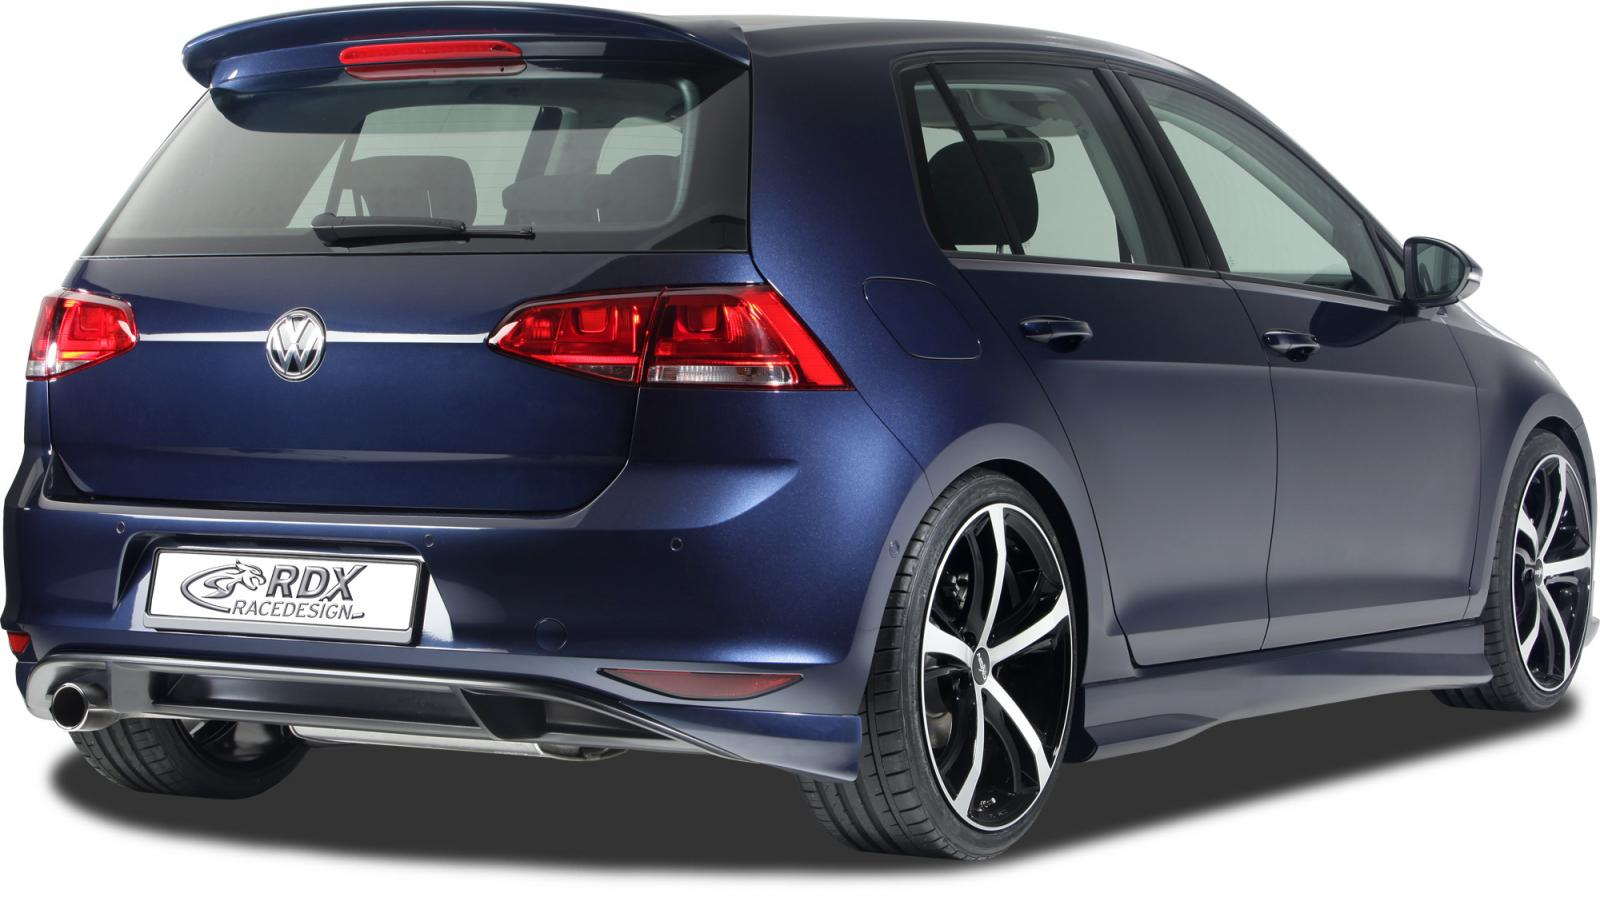 vw golf 7 gets body kit from rdx autoevolution. Black Bedroom Furniture Sets. Home Design Ideas